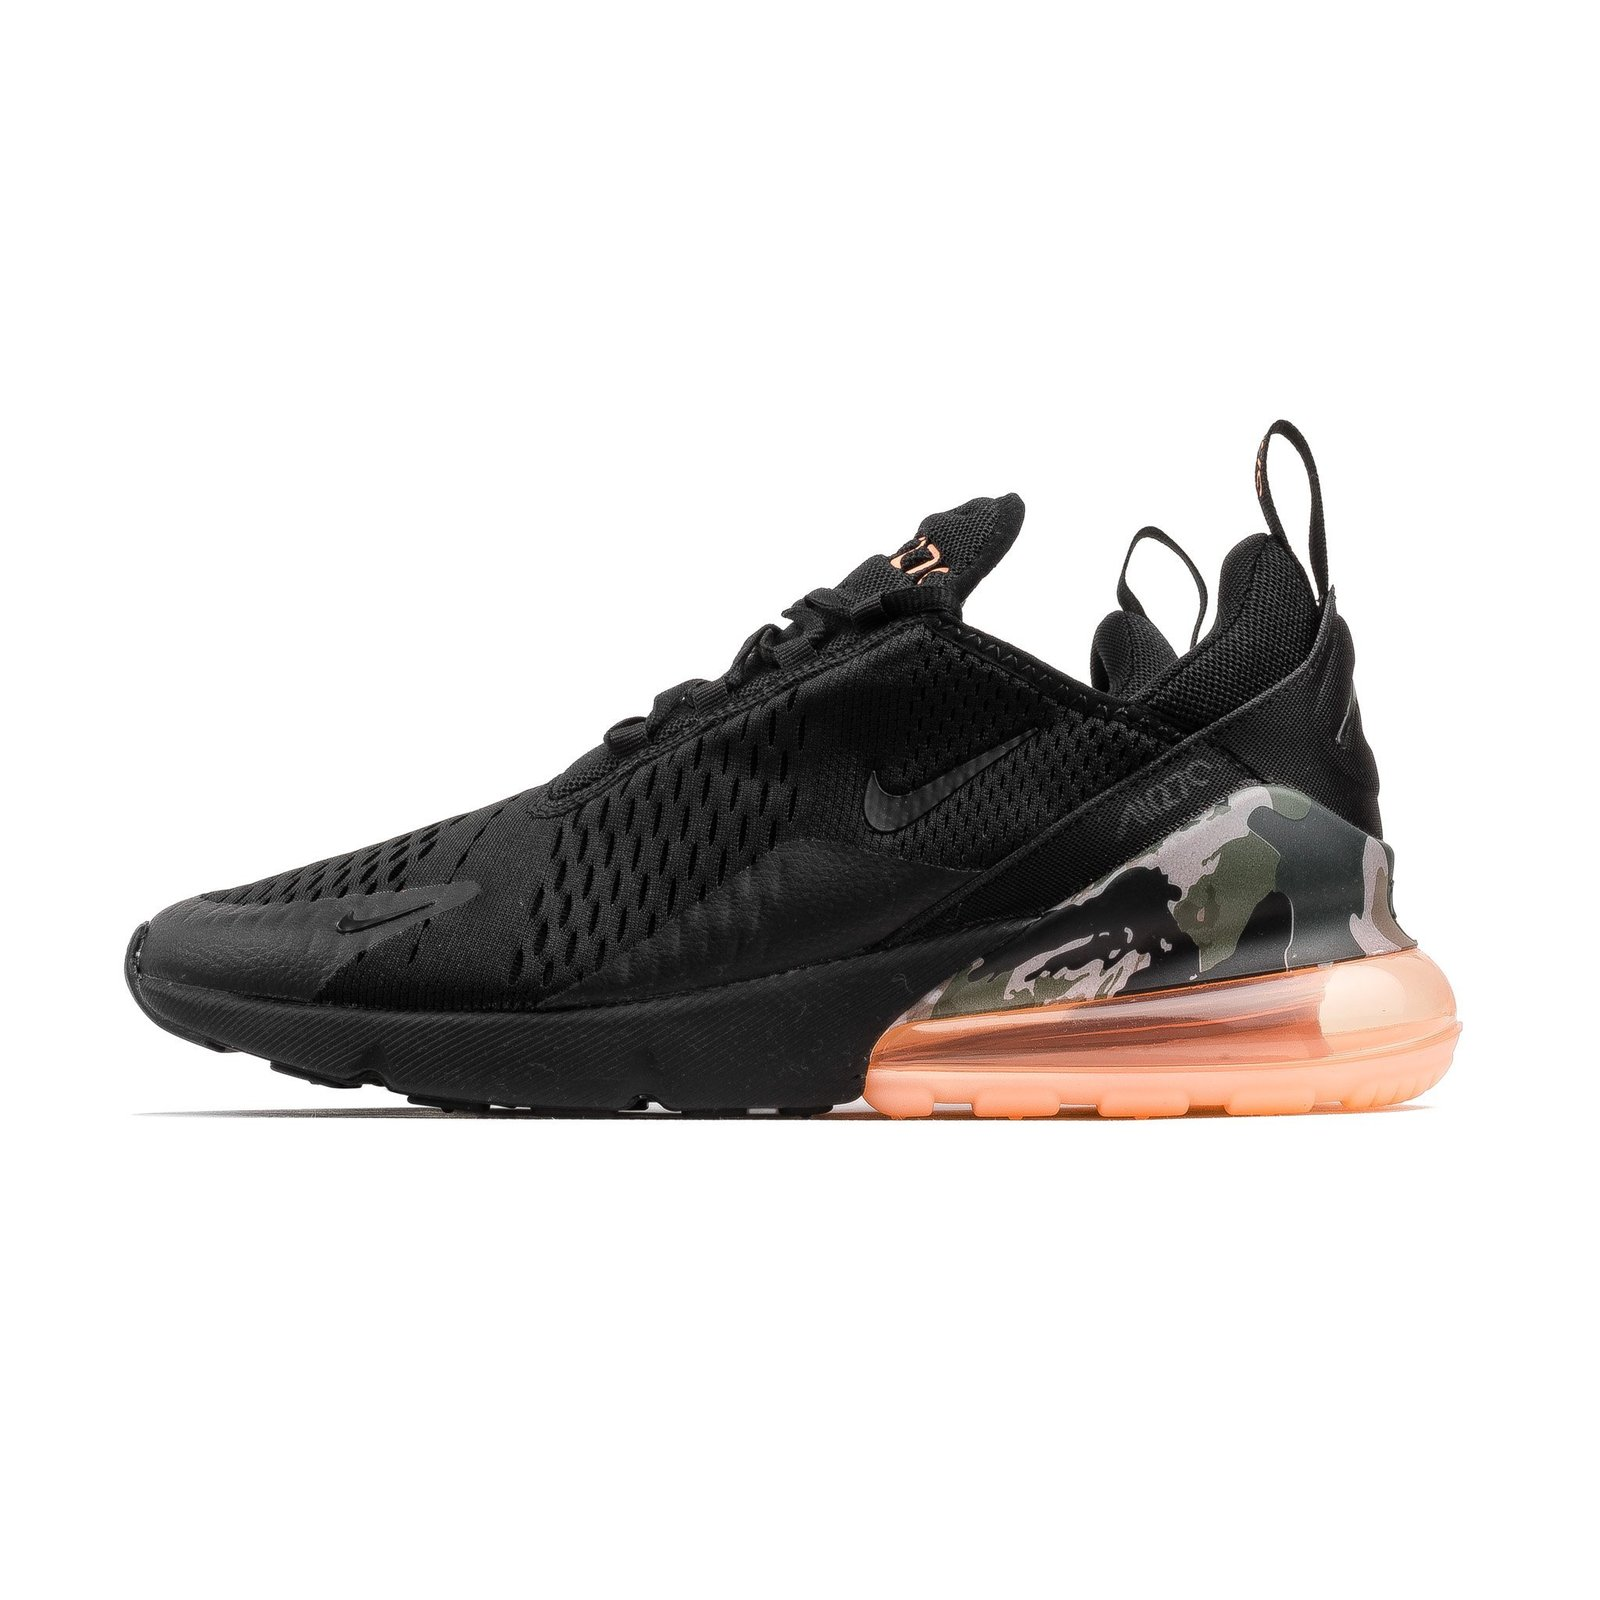 best website 42c20 82879 Nike Air Max 270 (Black  Sunset Tint Camo) and 50 similar items. Airmax270 2